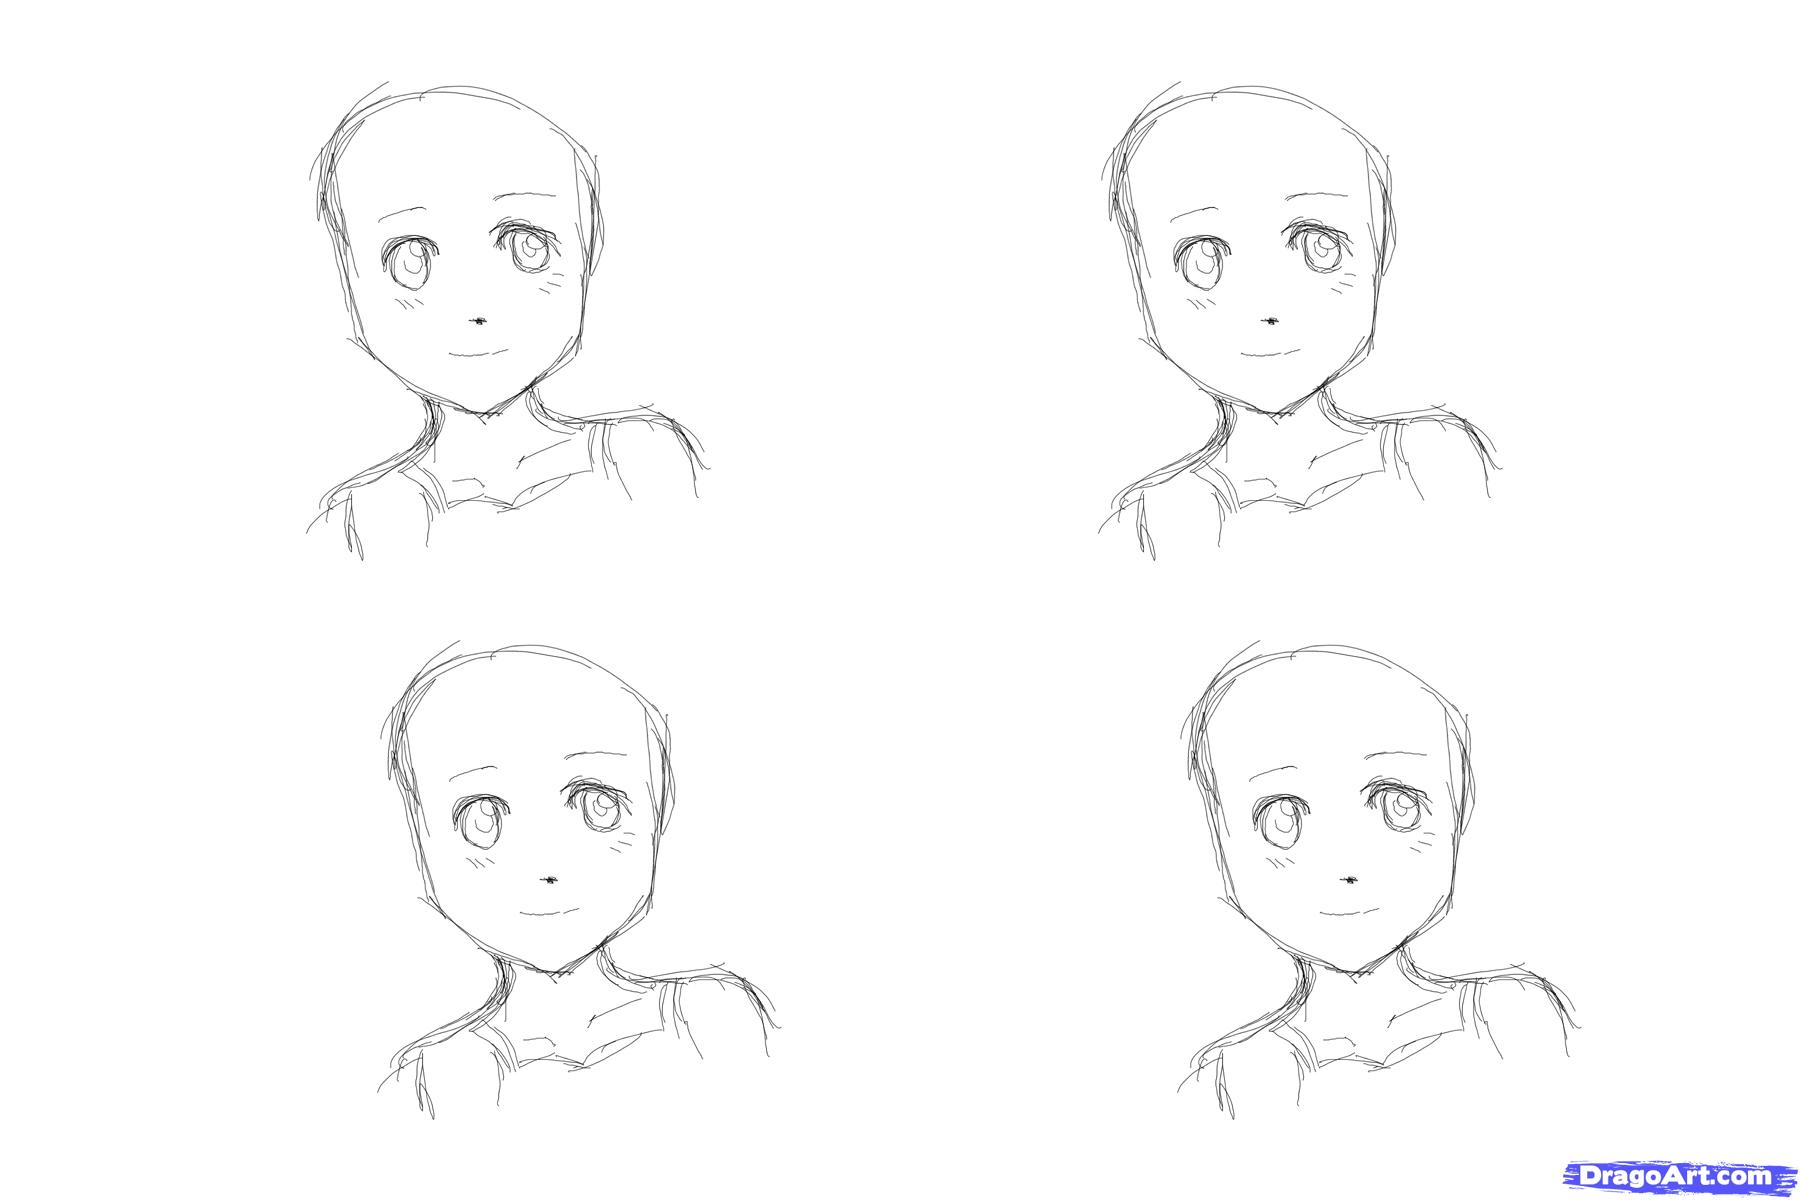 how to draw anime step by step to draw anime hair for girls step by step anime hair draw anime how to by step step